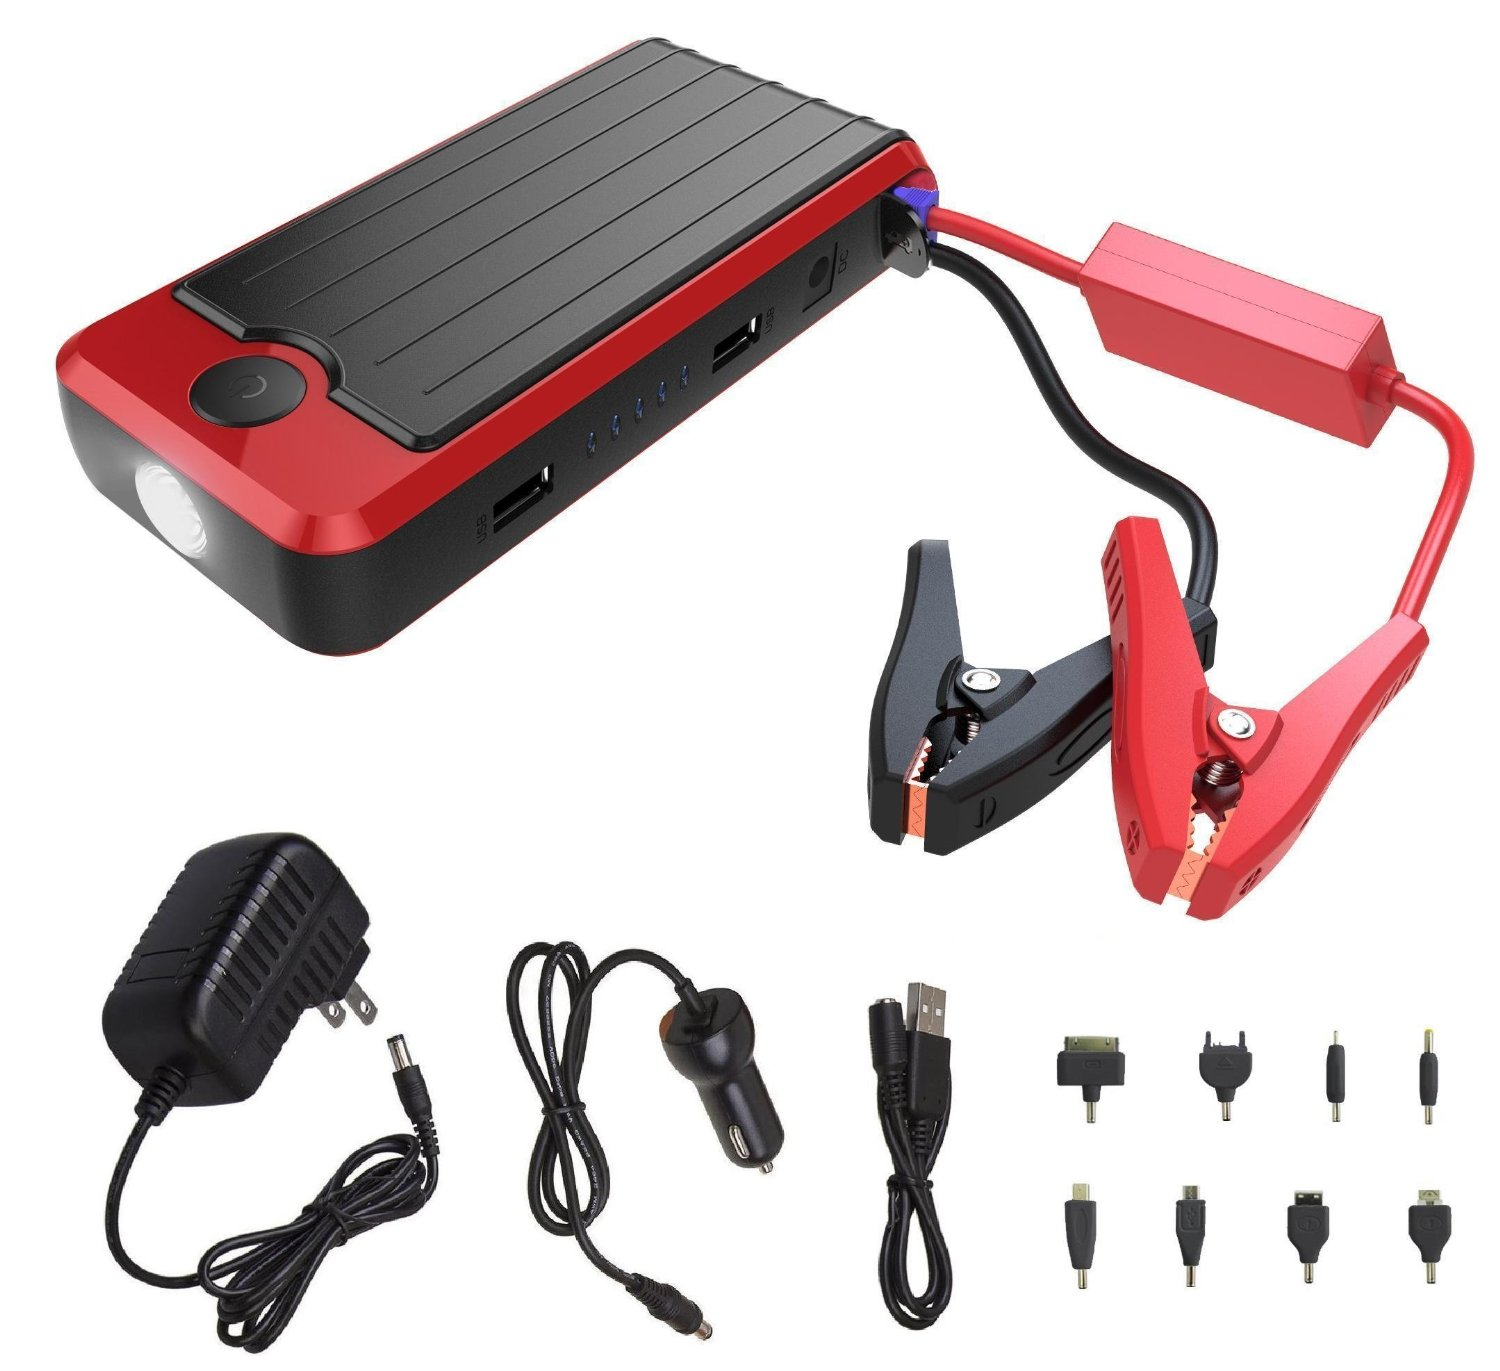 POWERALL PORTABLE POWER BANK -RED BOOSTER